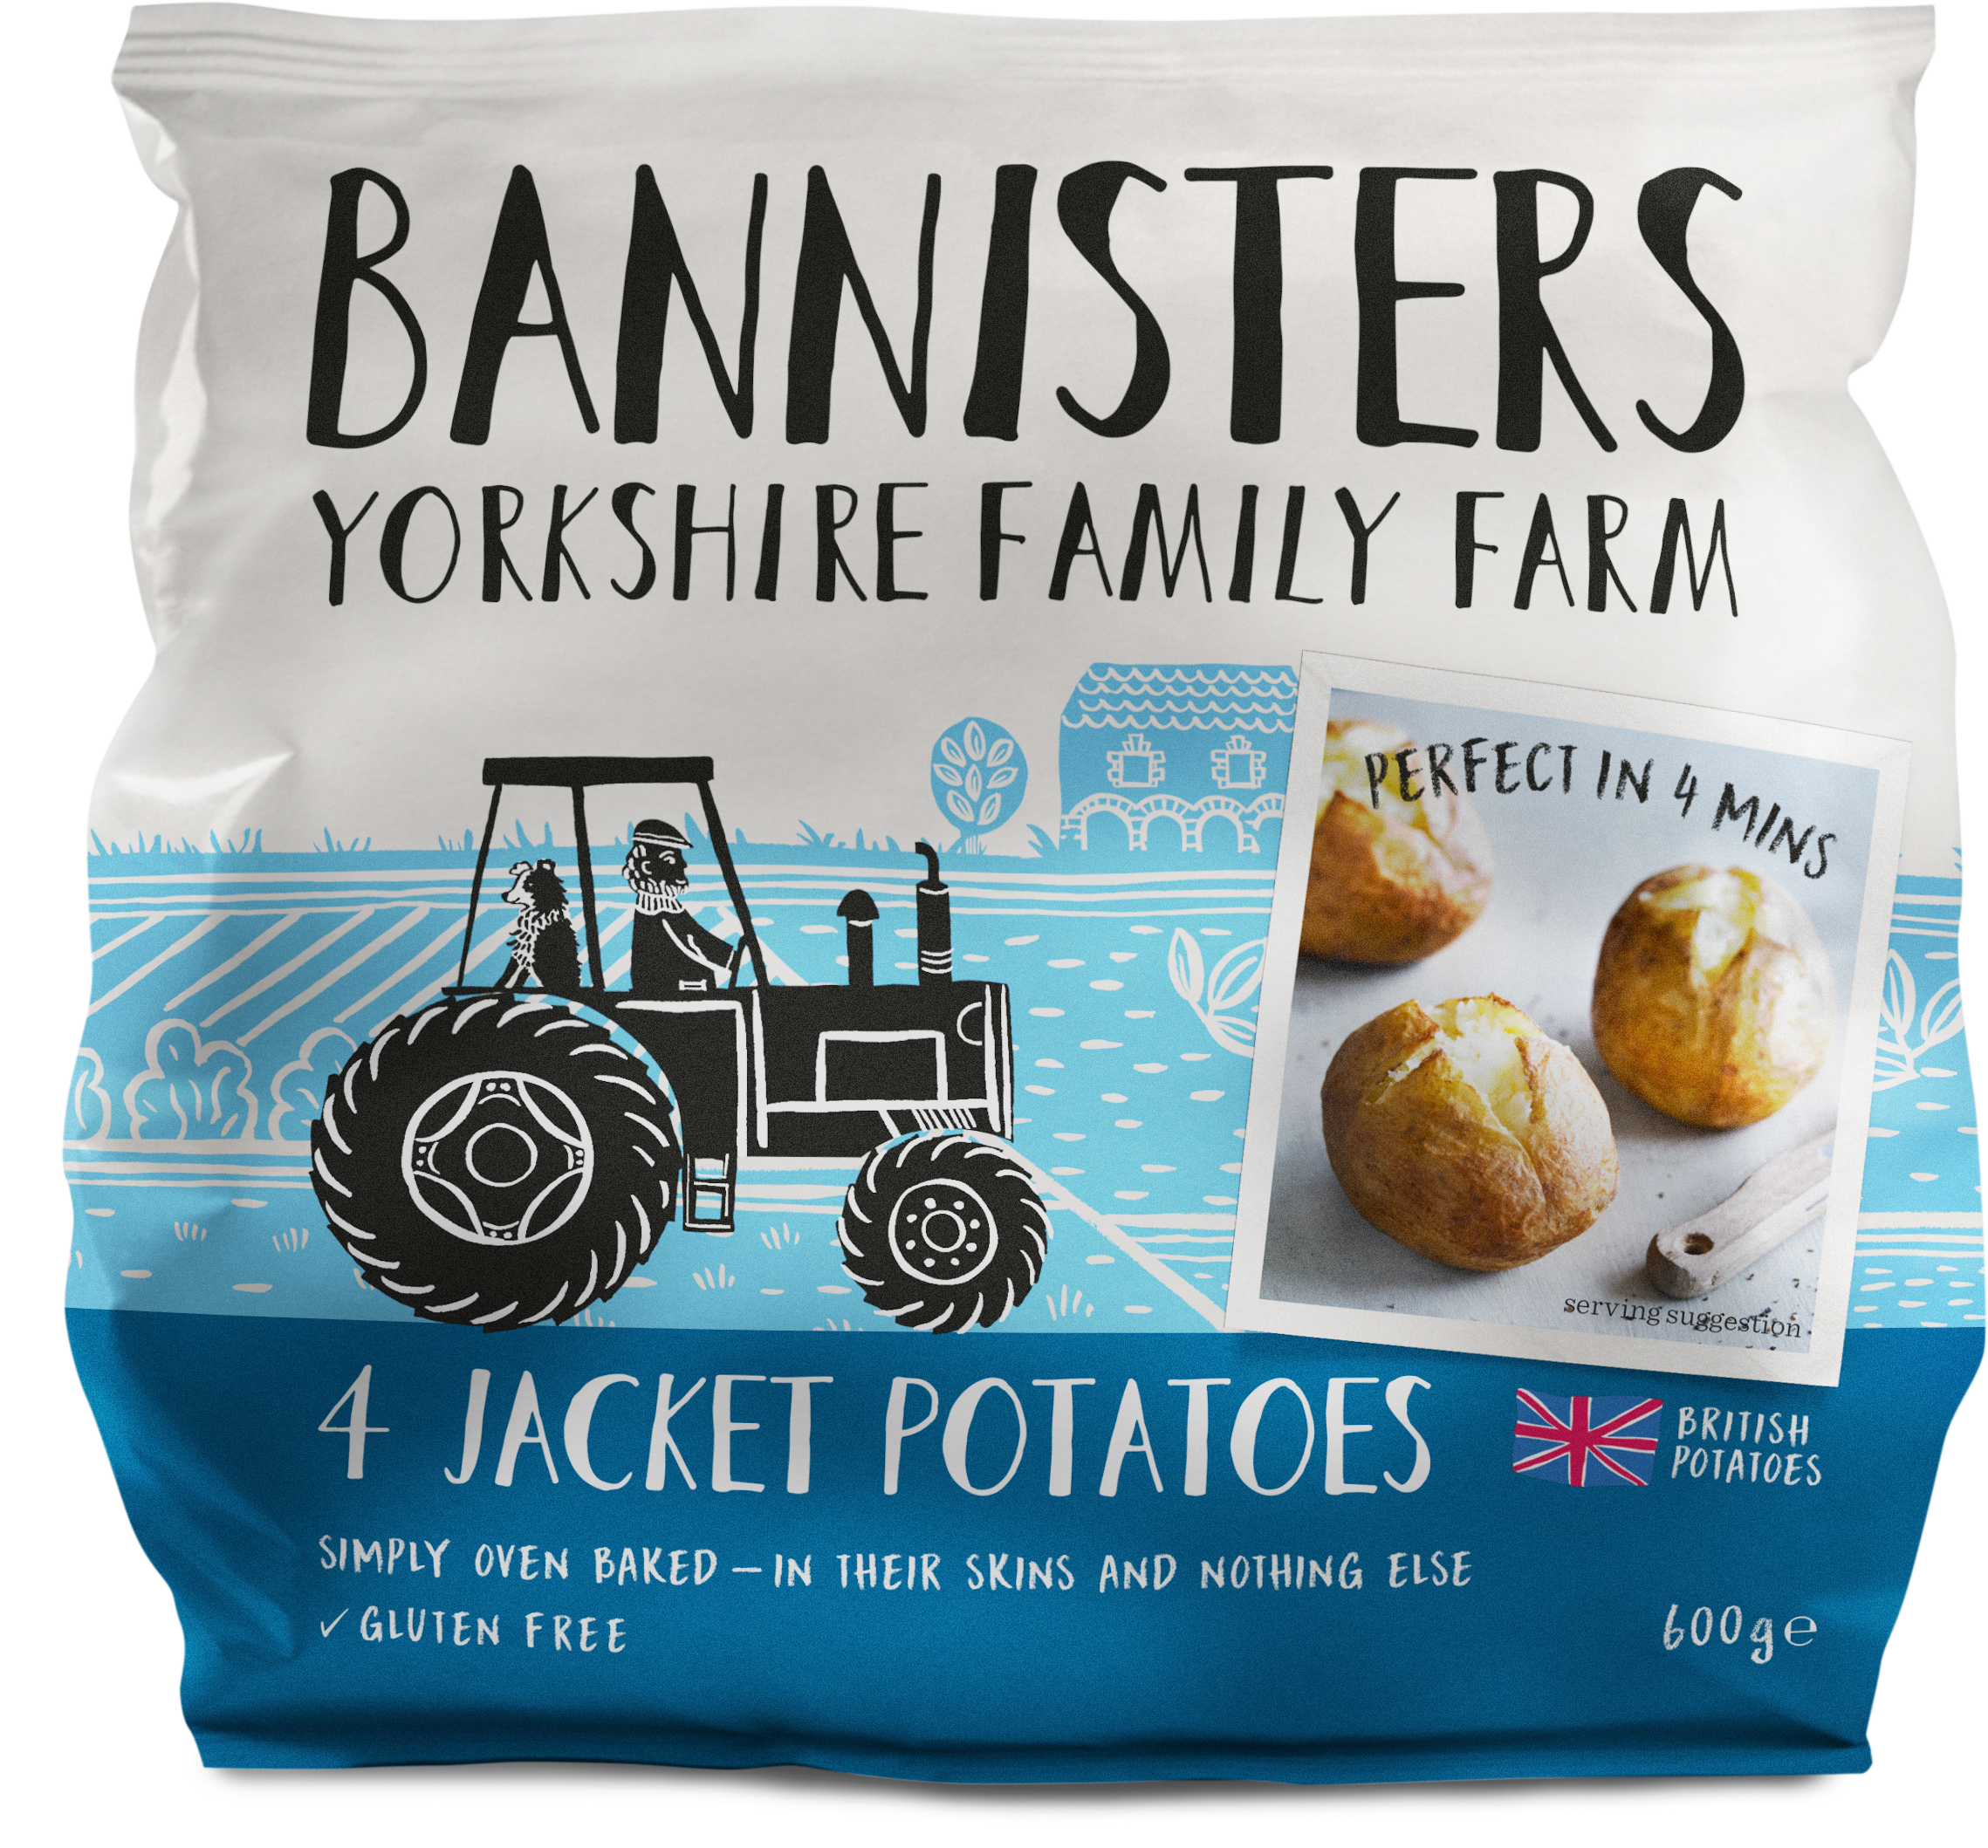 4 Ready Baked Naked Jacket Potatoes Bannisters Yorkshire